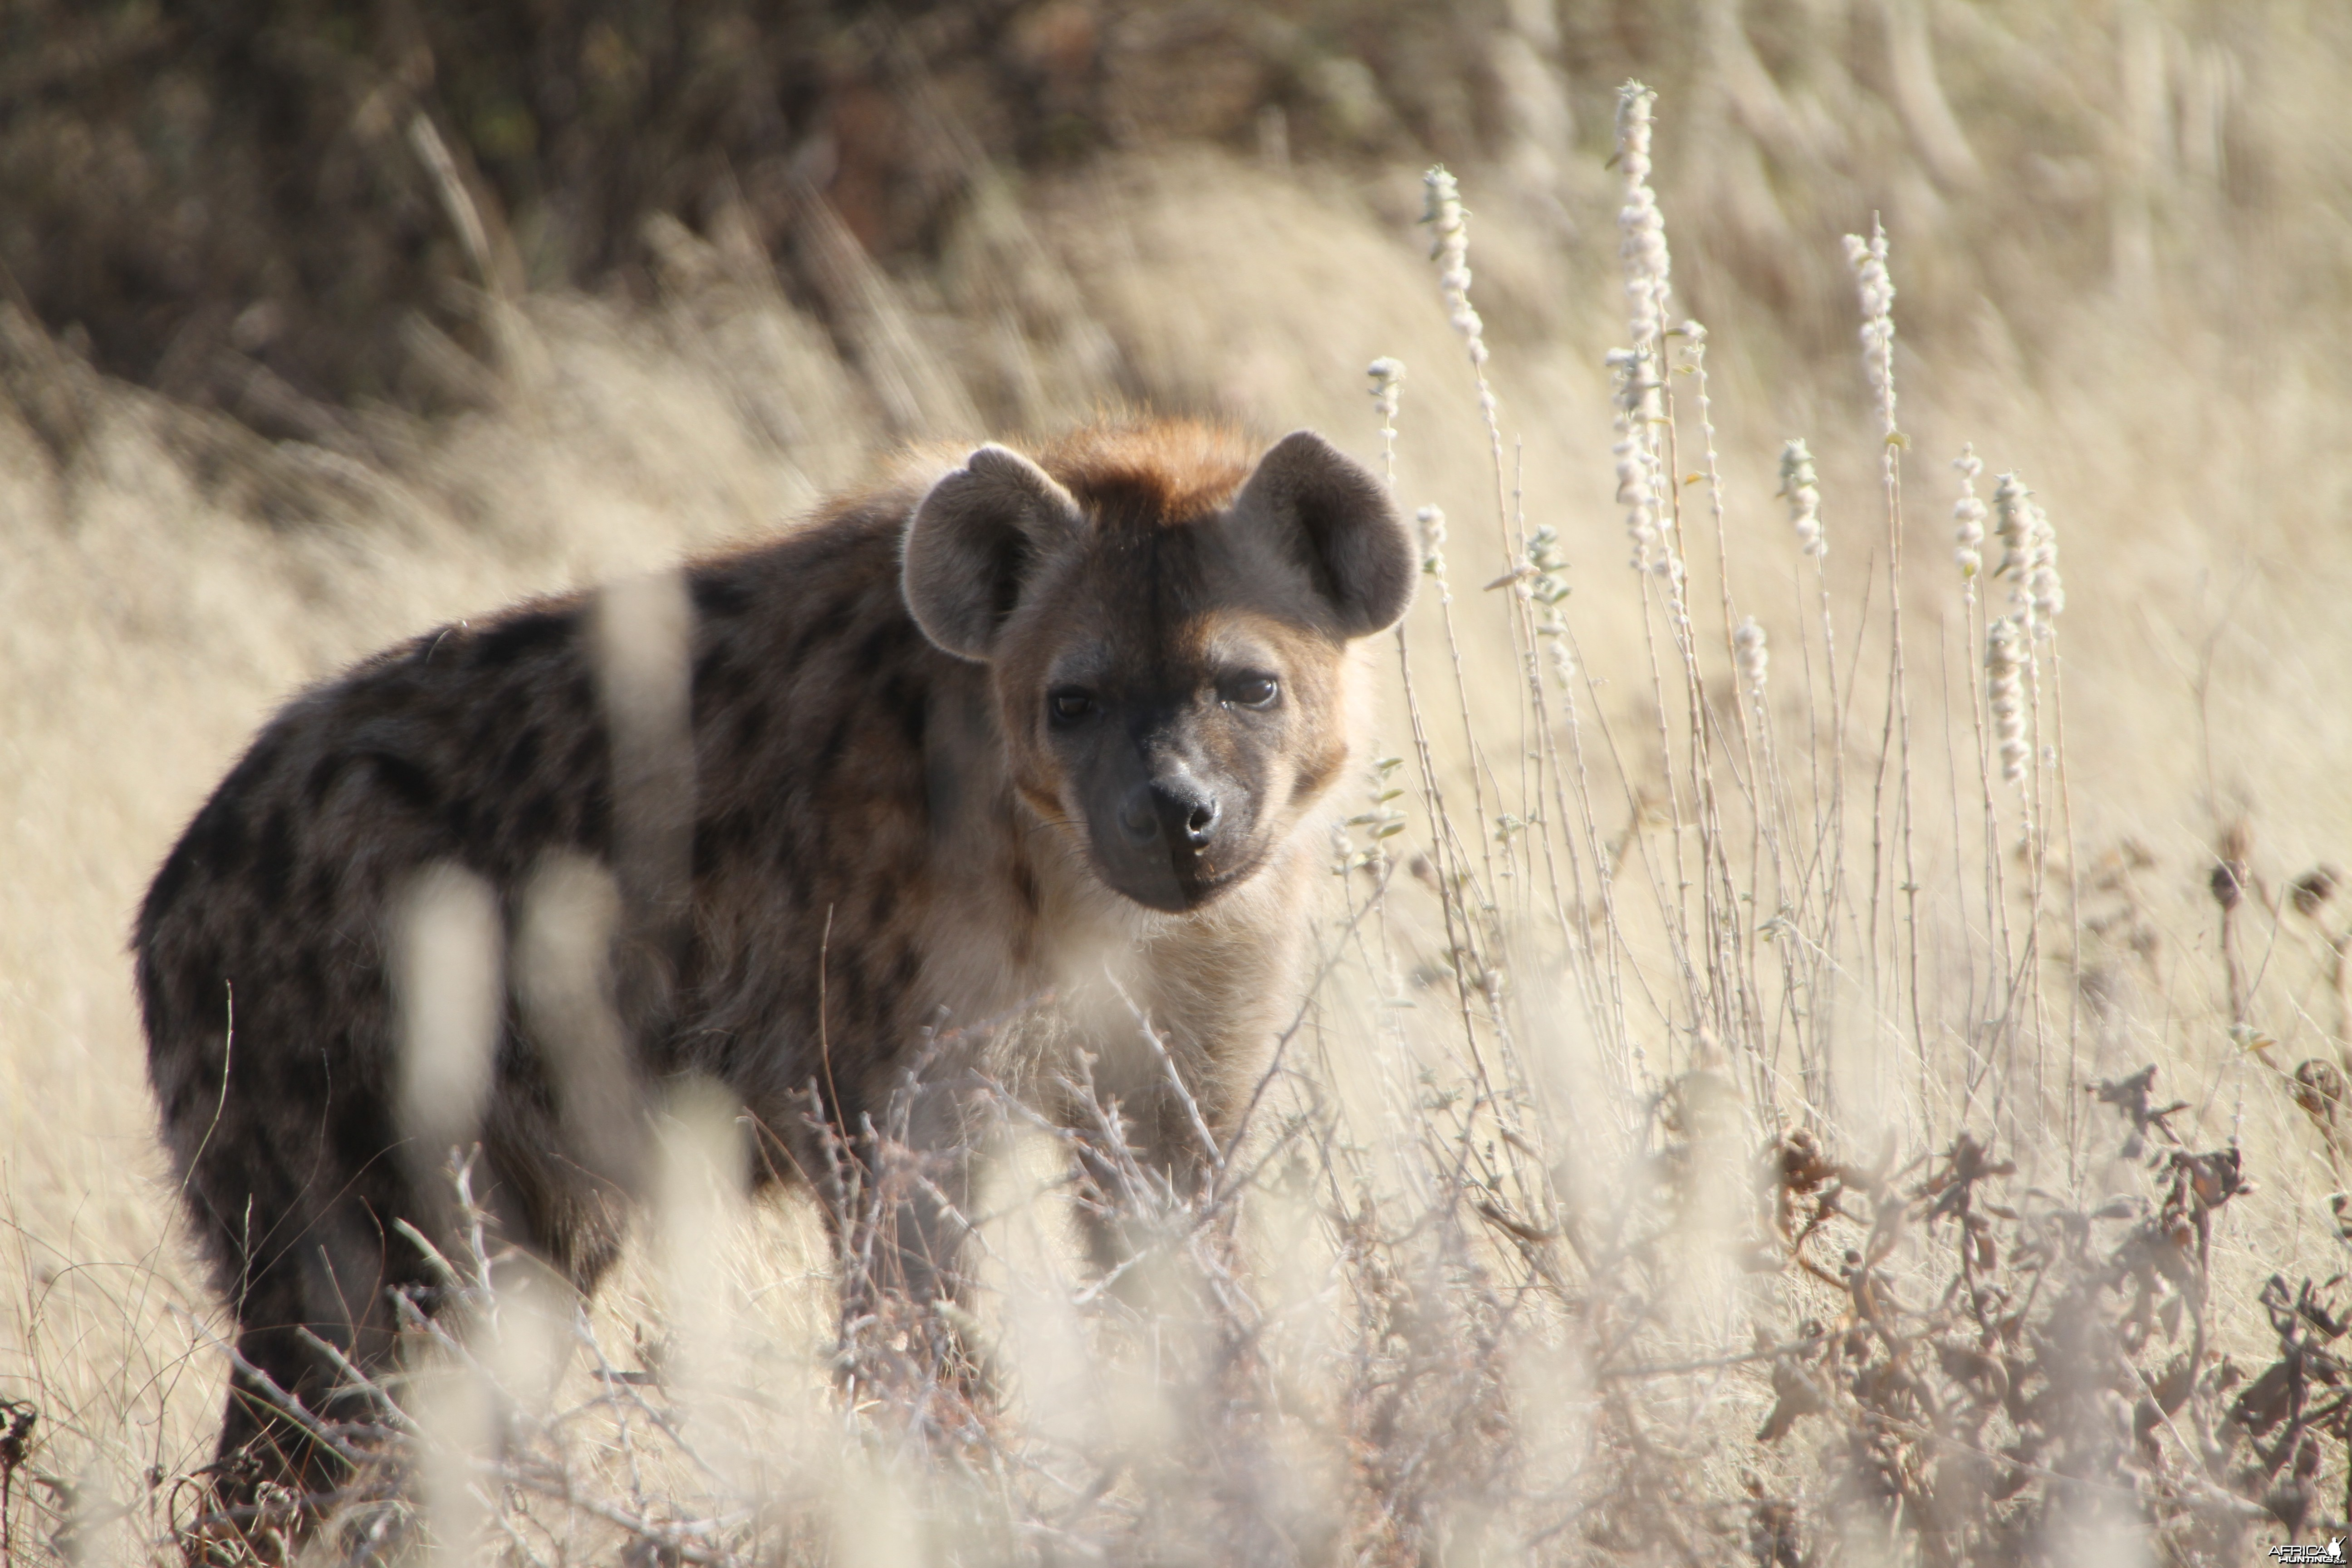 Spotted Hyena at Etosha National Park